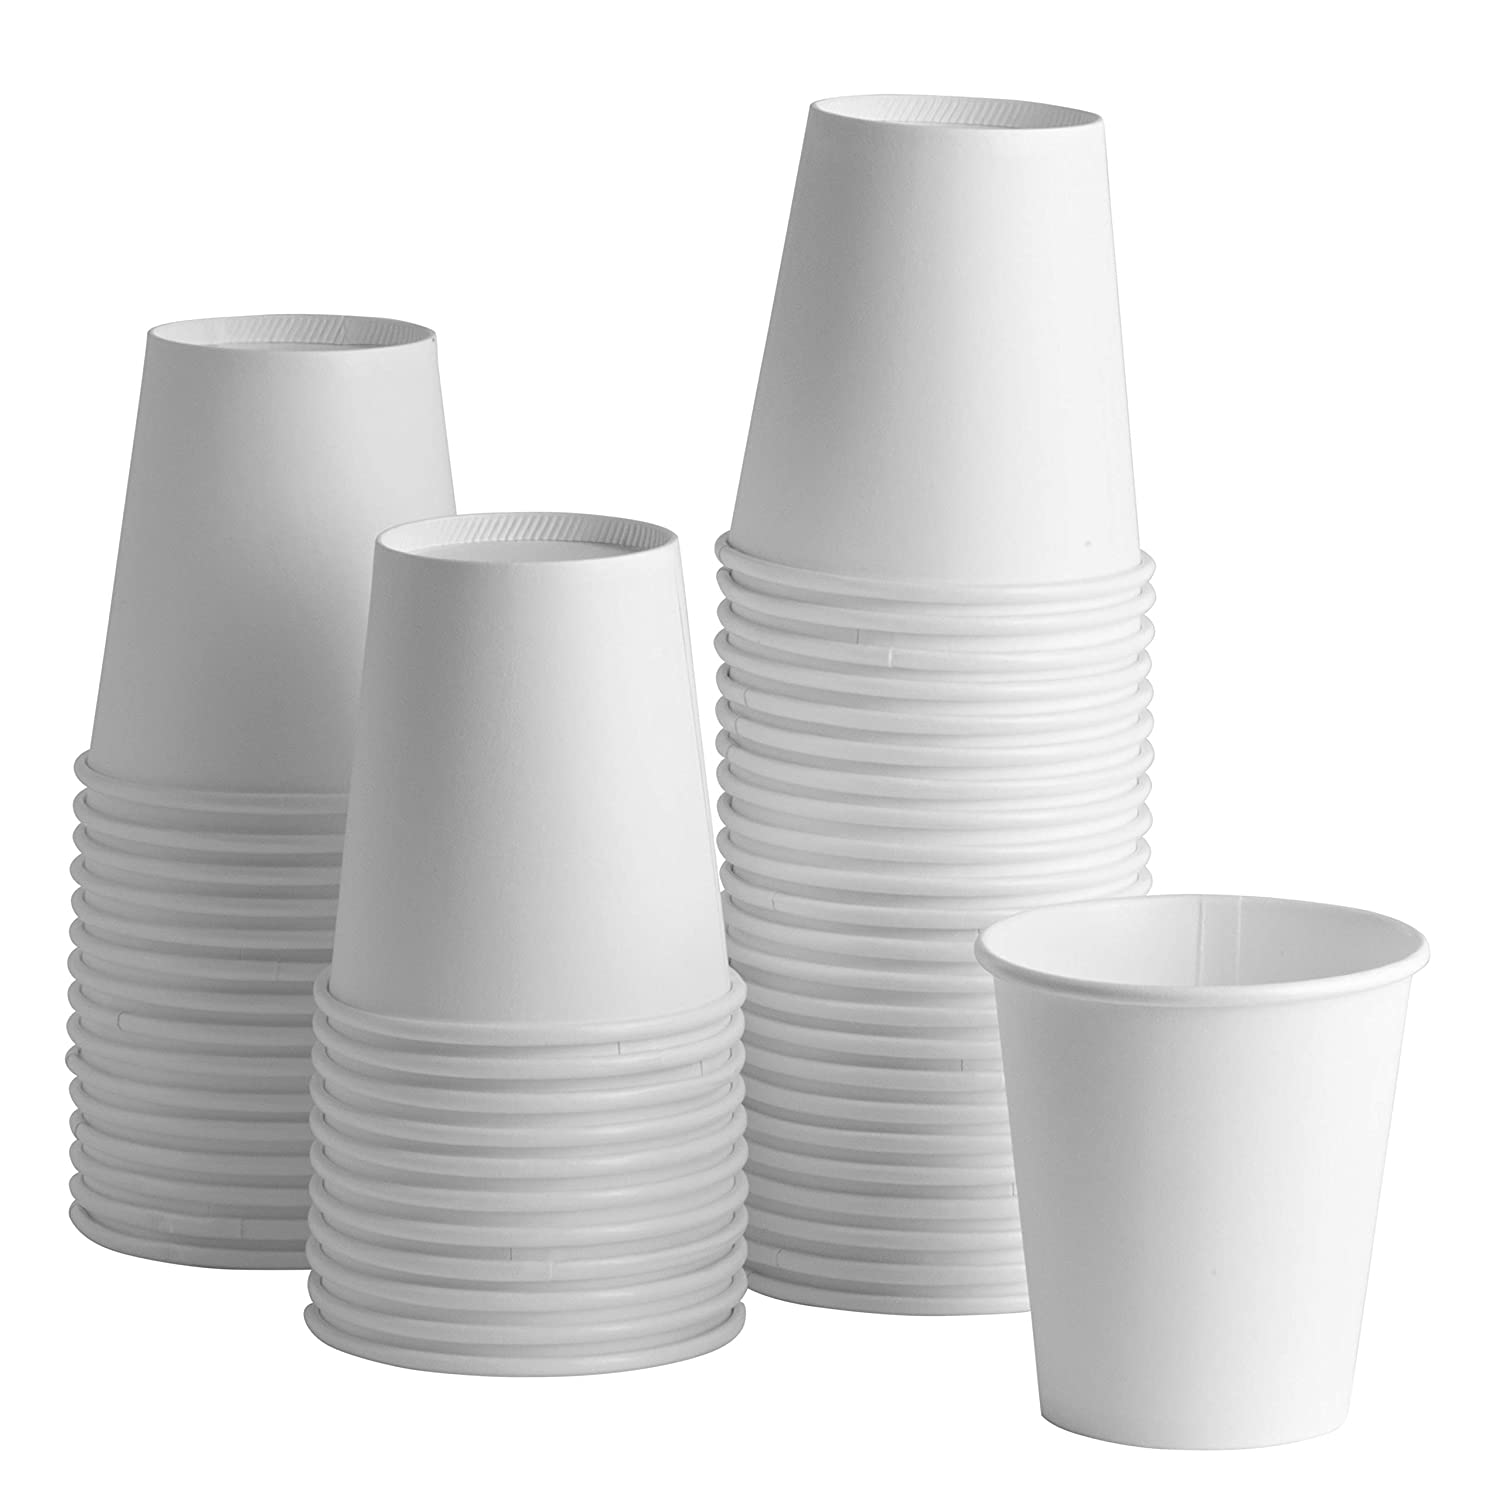 [100 Pack] 8 oz. White Paper Hot Cups, Coffee Cups Rikkel Corp